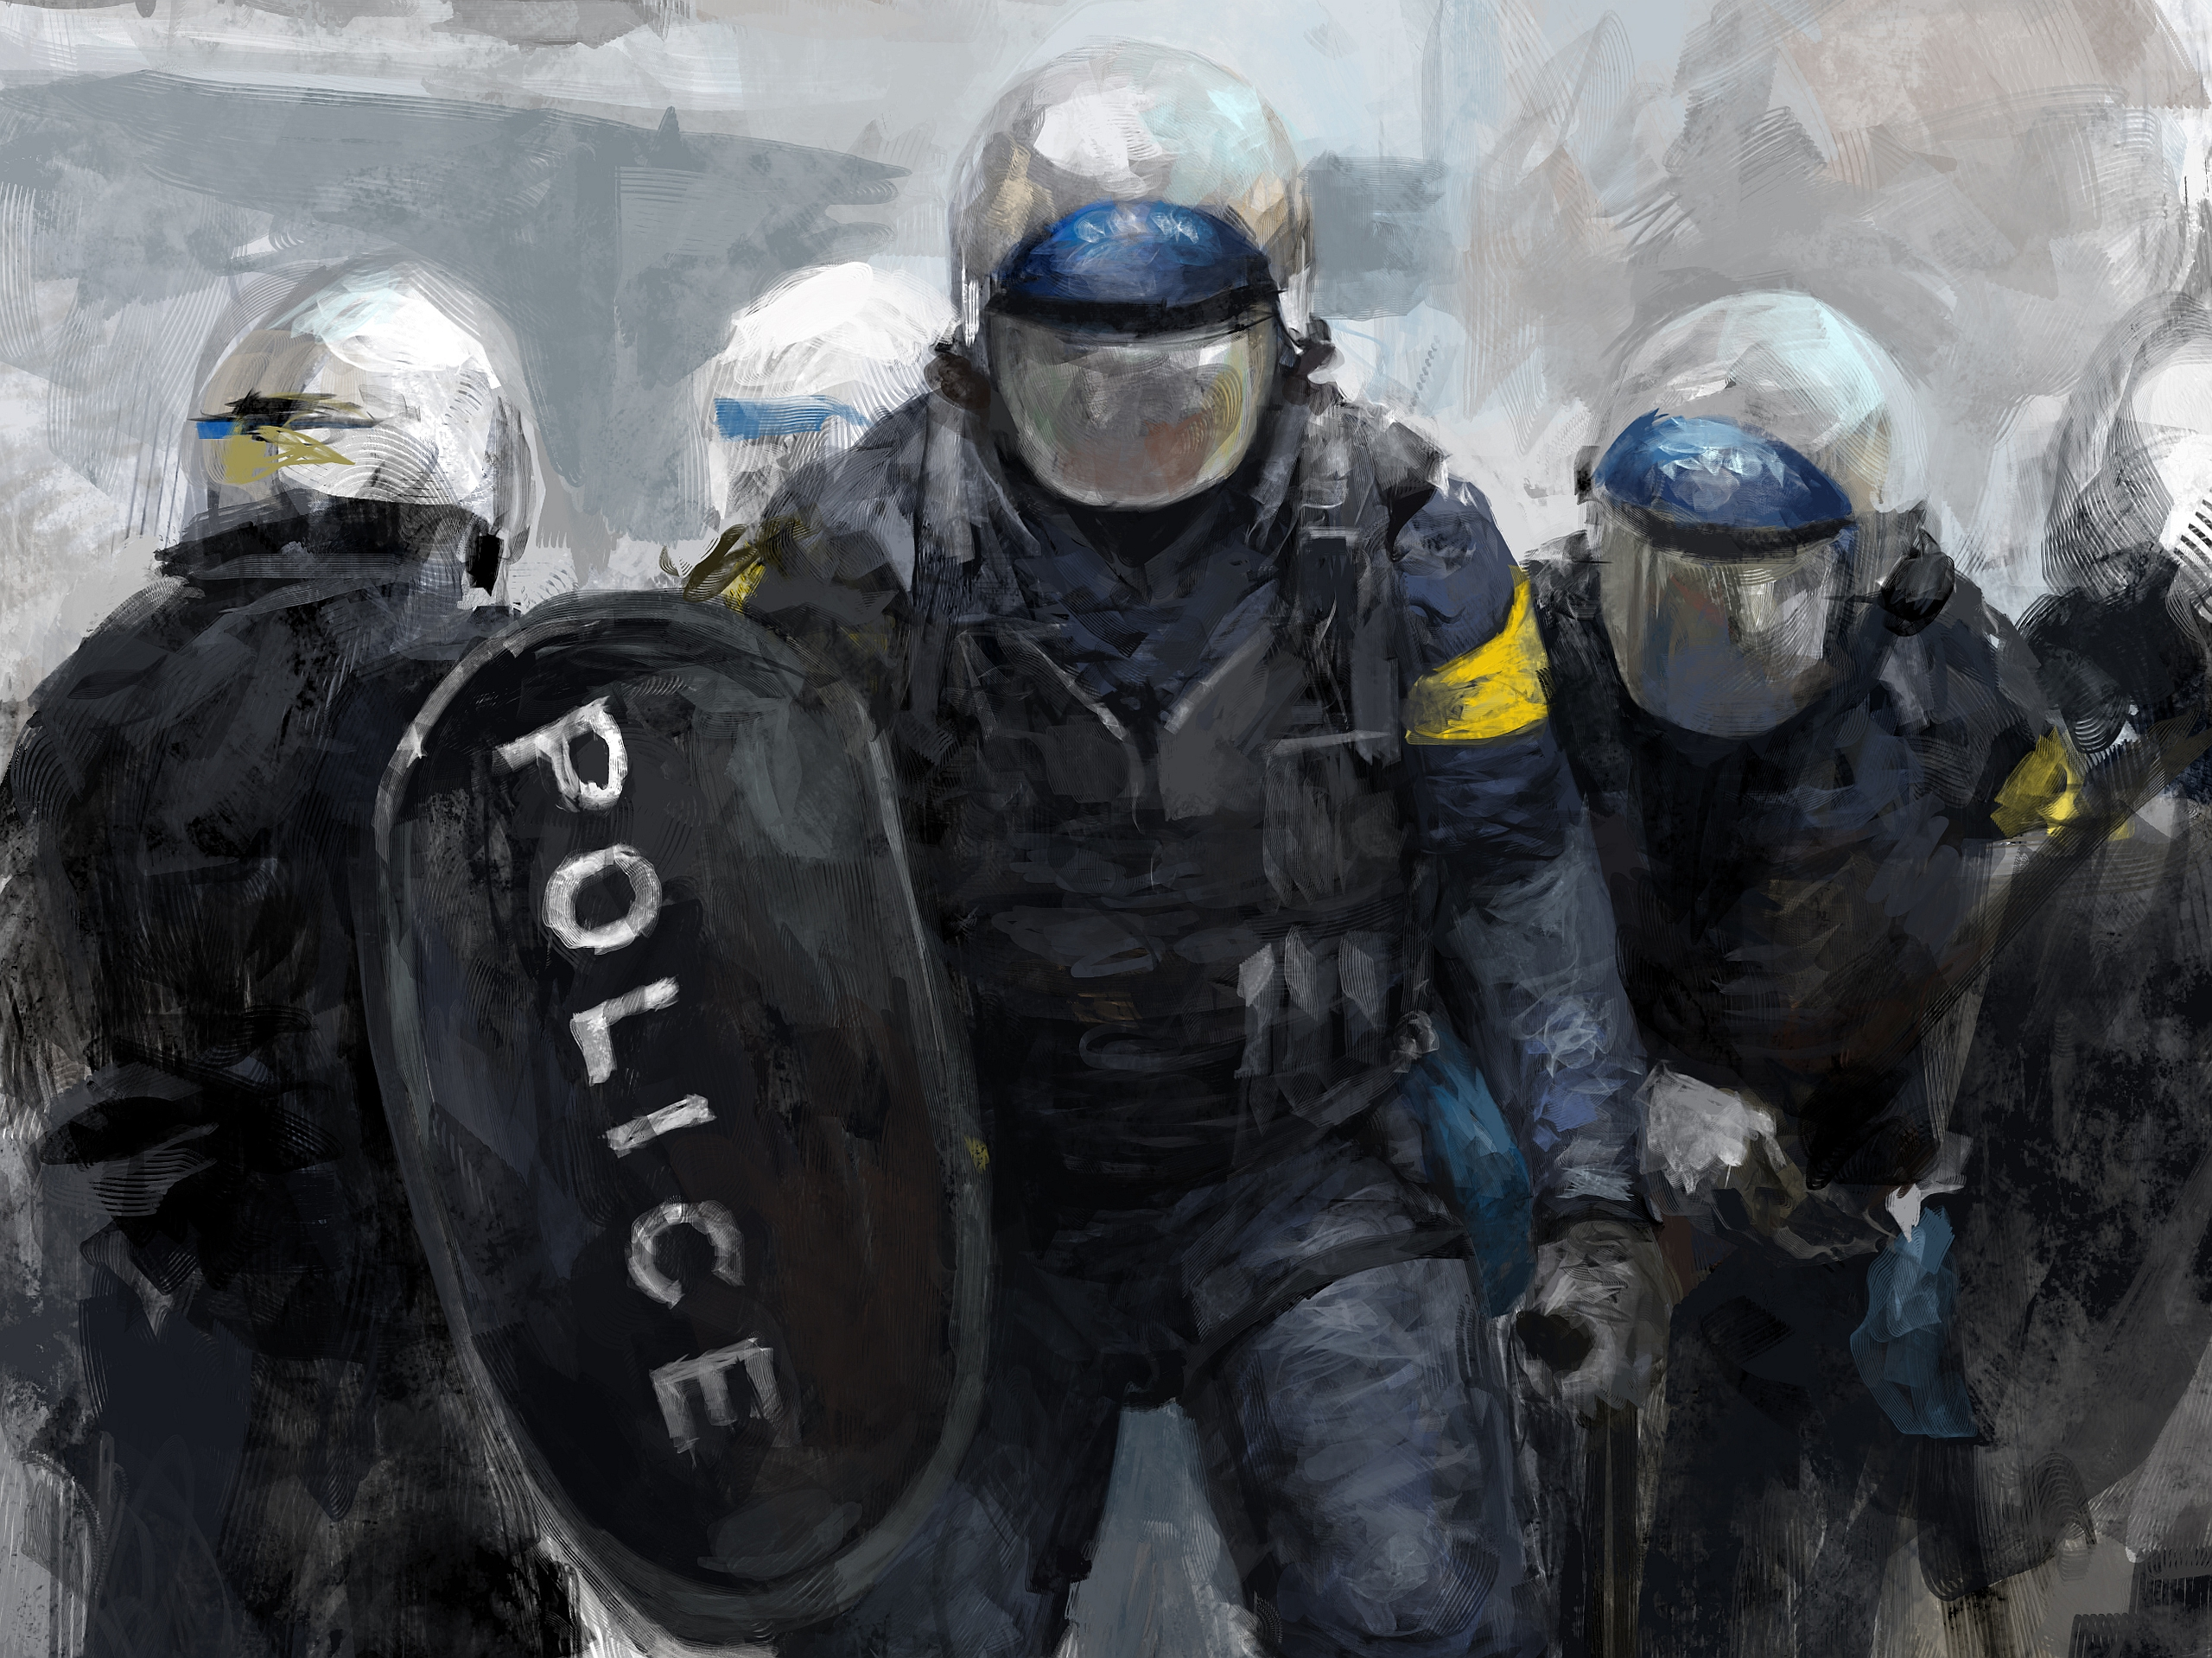 Police Computer Wallpapers, Desktop Backgrounds | 2560x1919 | ID ...: wall.alphacoders.com/big.php?i=374476